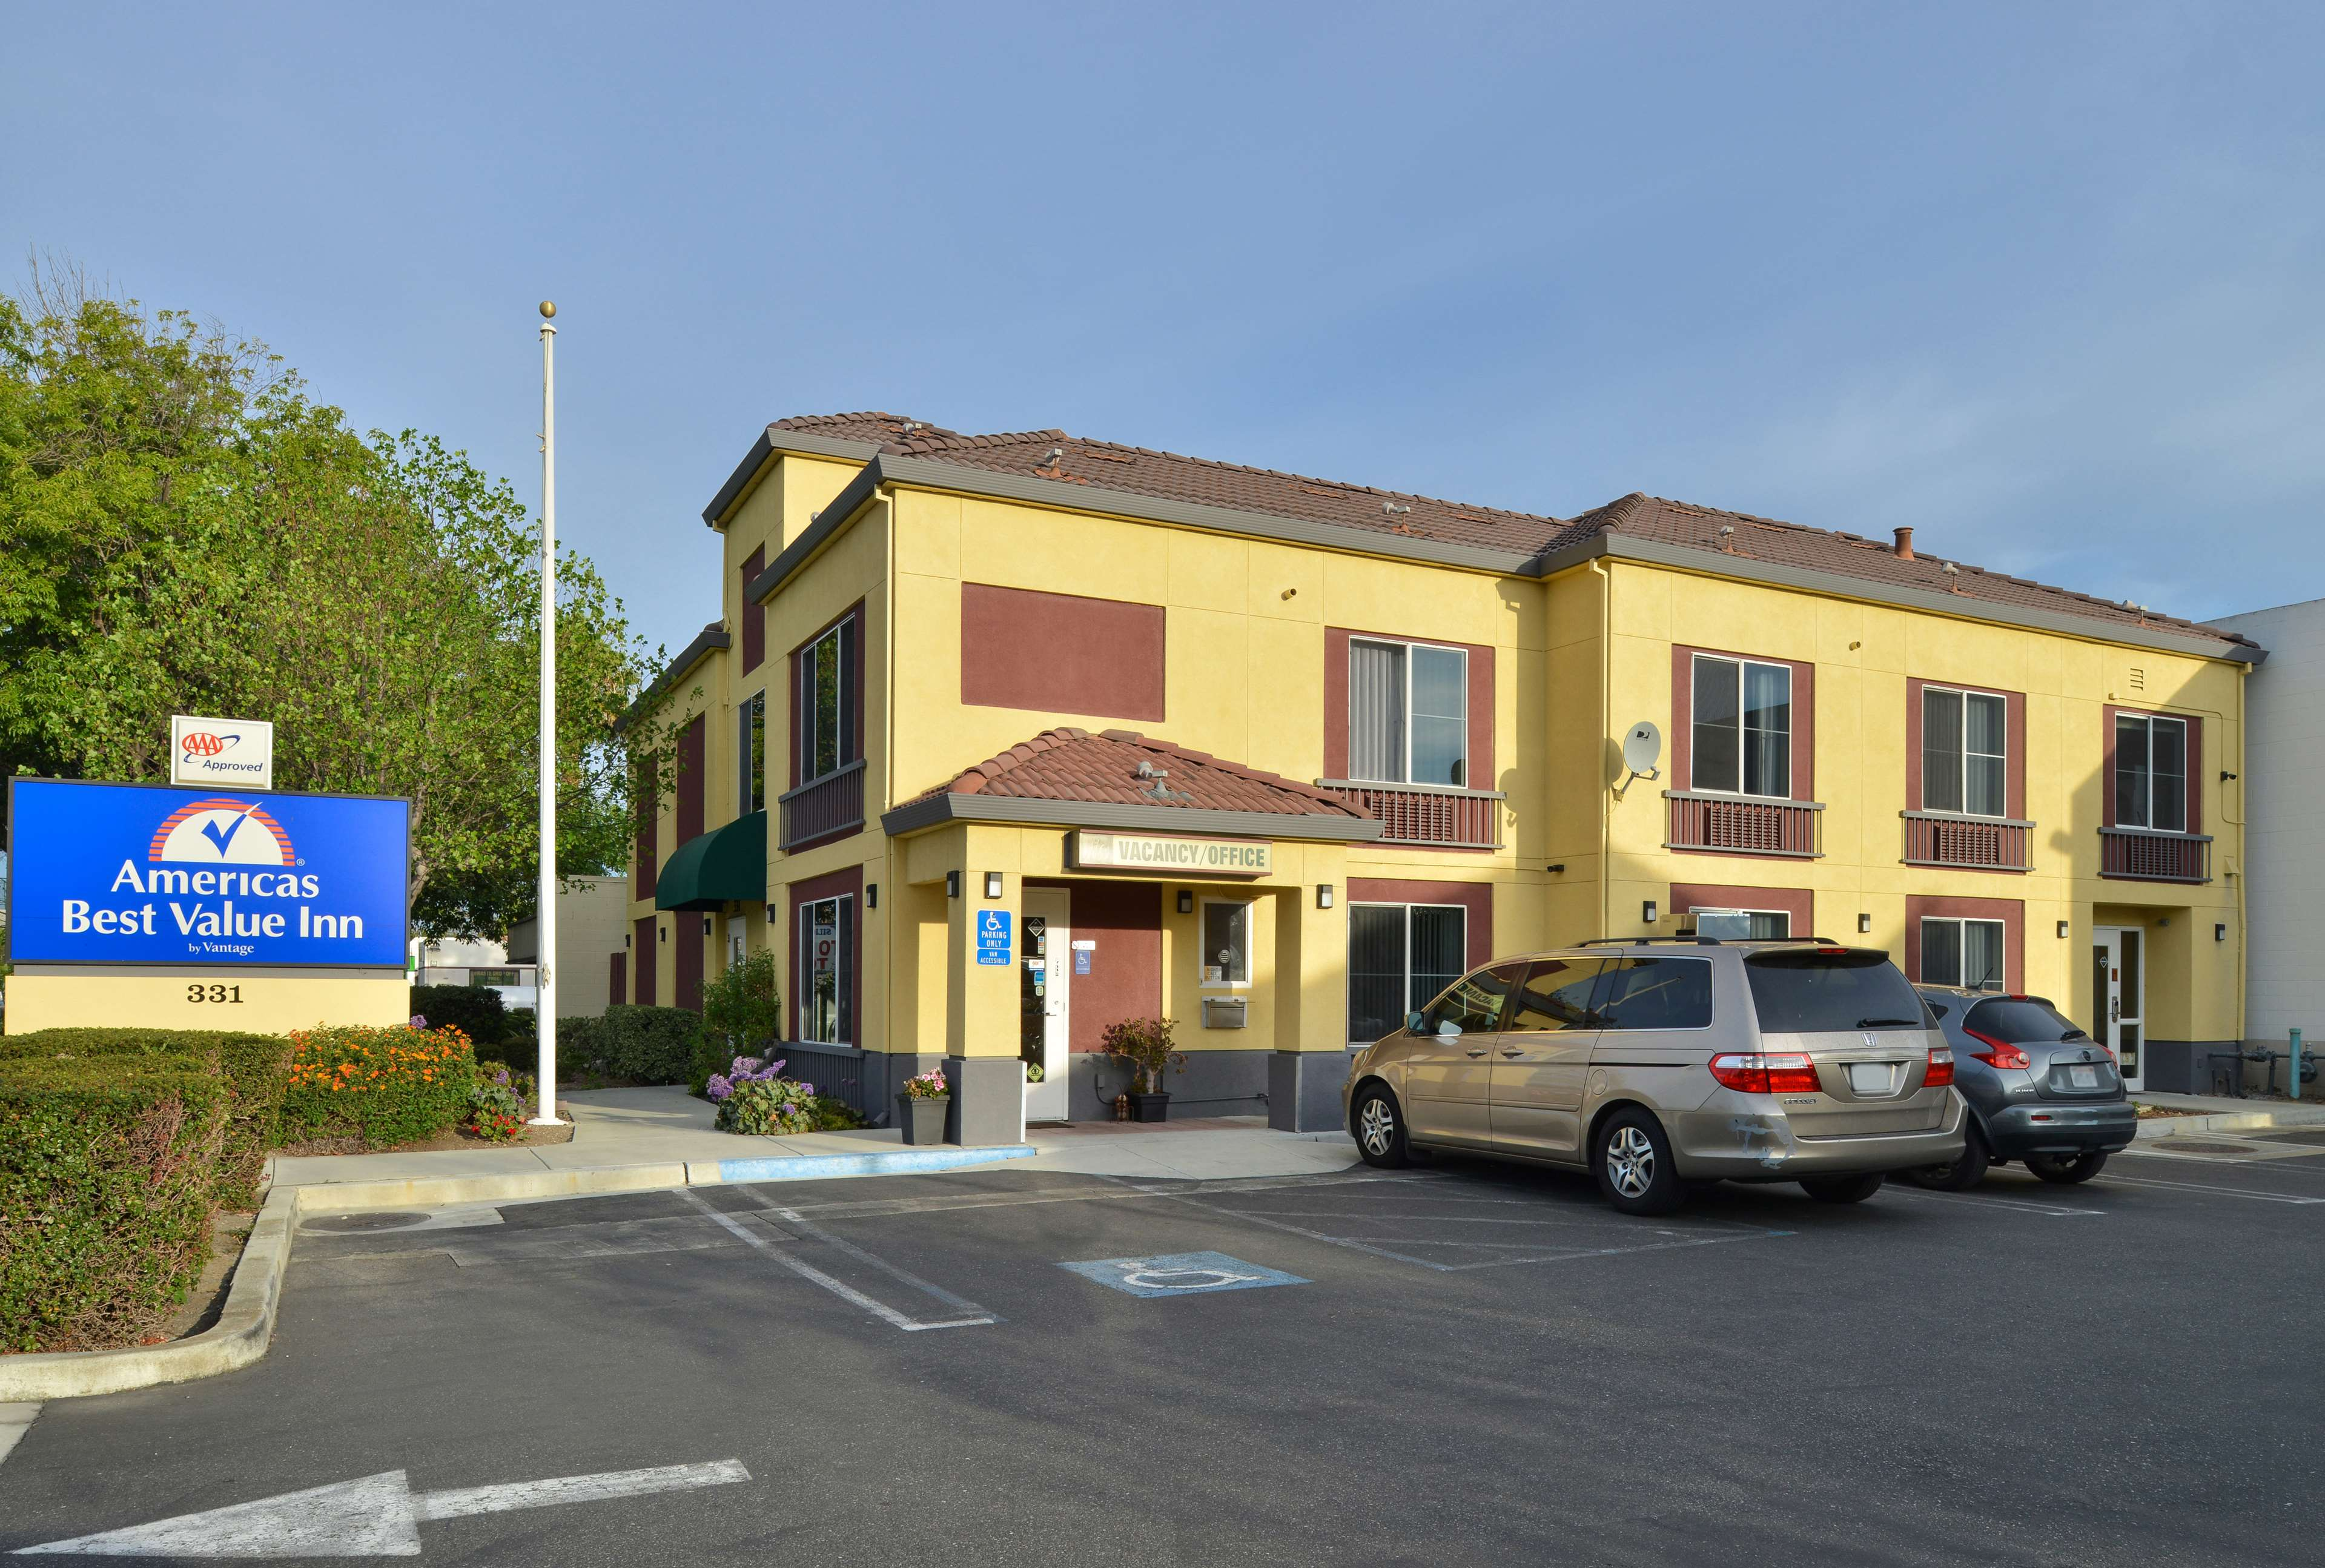 Americas best value inn sunnyvale coupons near me in for Americas best coupon code